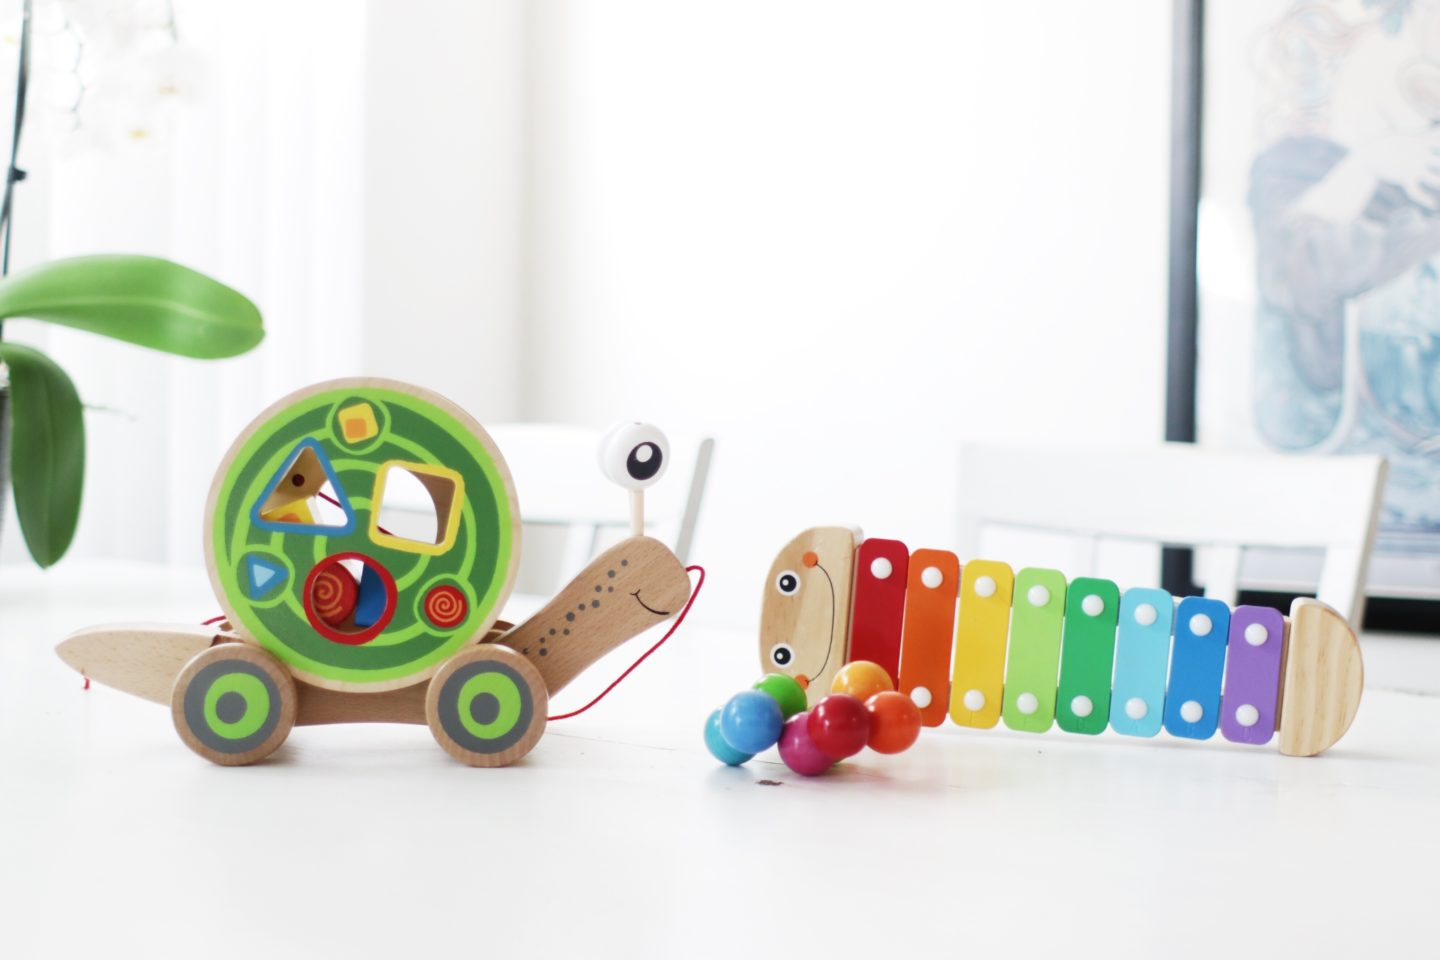 Montessori Method Toys - What Is It and a Tour! - thecasualfree.com